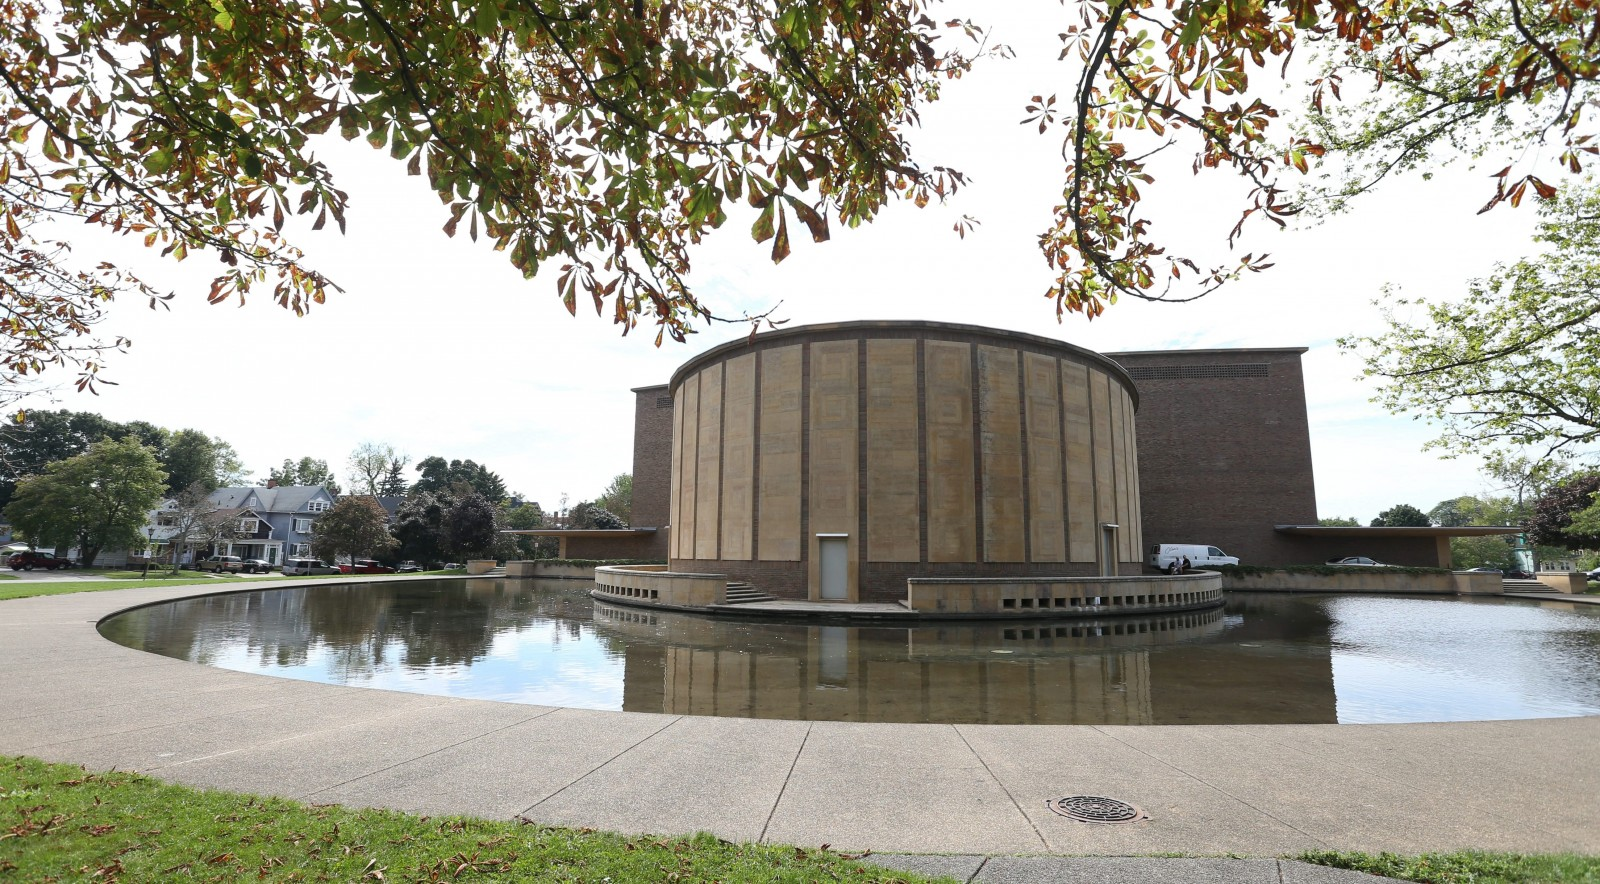 Kleinhans Music Hall, which opened in 1940, is considered one of the most acoustically perfect halls in the world.  Designed by Finnish father-and-son team of Eliel an Eero Saarinen, the building is also a beauty with its many curves and striking lines.  The reflecting pool is one of the distinctive features.